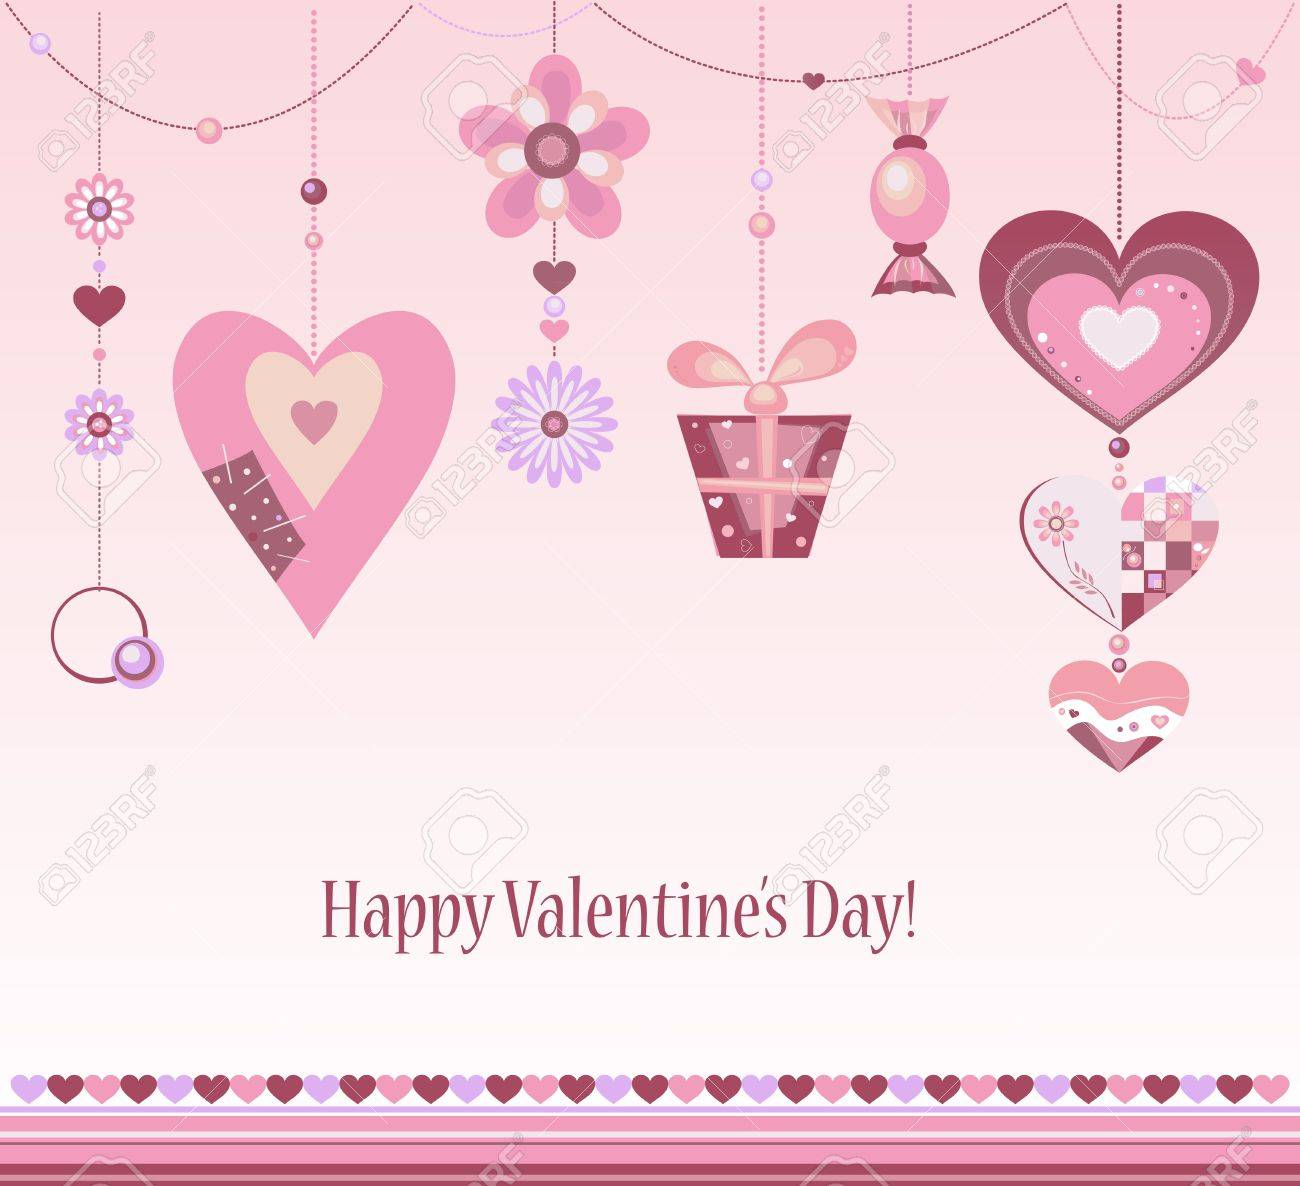 clip art happy valentine day colorful greeting card with different